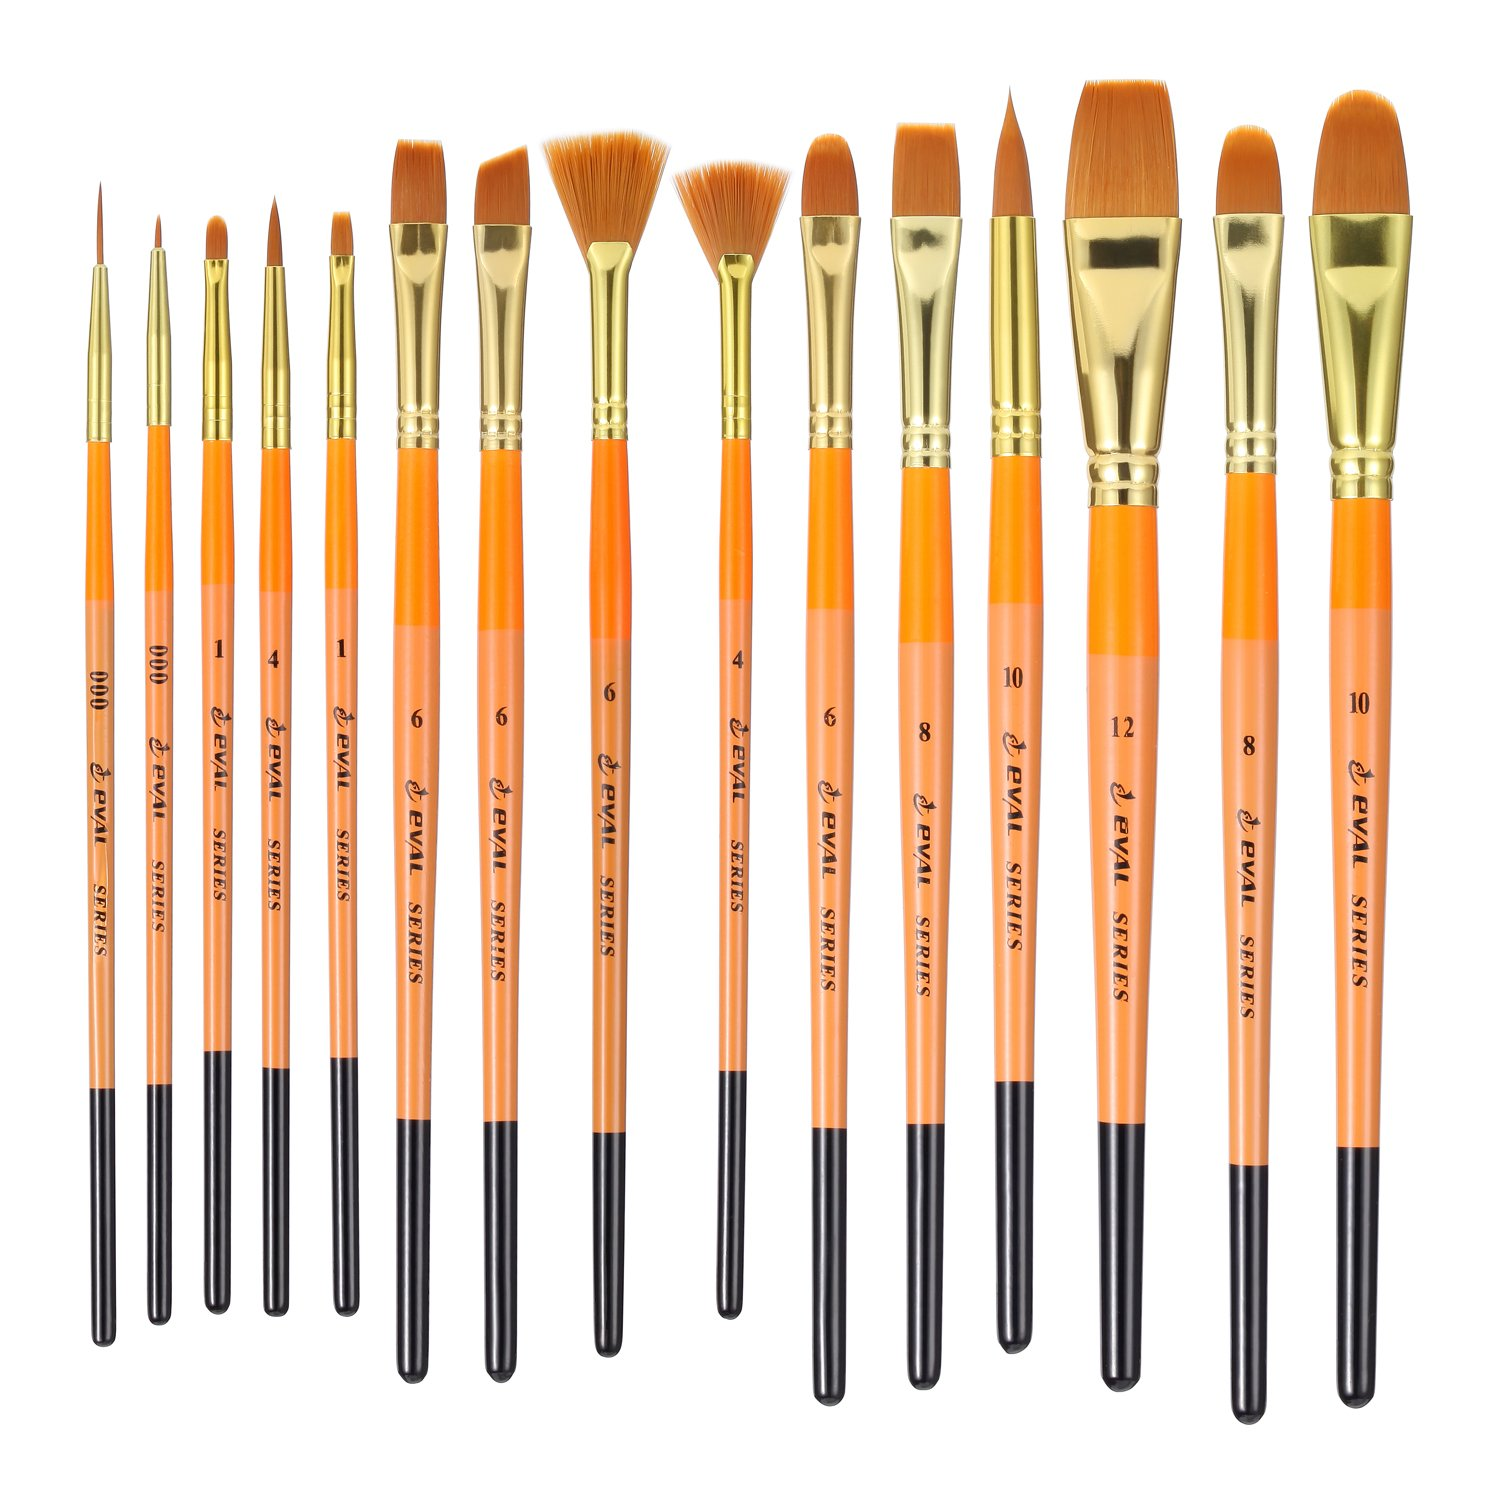 15Pcs/Set Art Paint Brush Set Professional Nylon Hair and Birch Wood Handle Artist Brushes for Watercolor Acrylic Gouache Oil Painting by EVAL with Portable Carry Case Art Travel Kit (15Pcs)